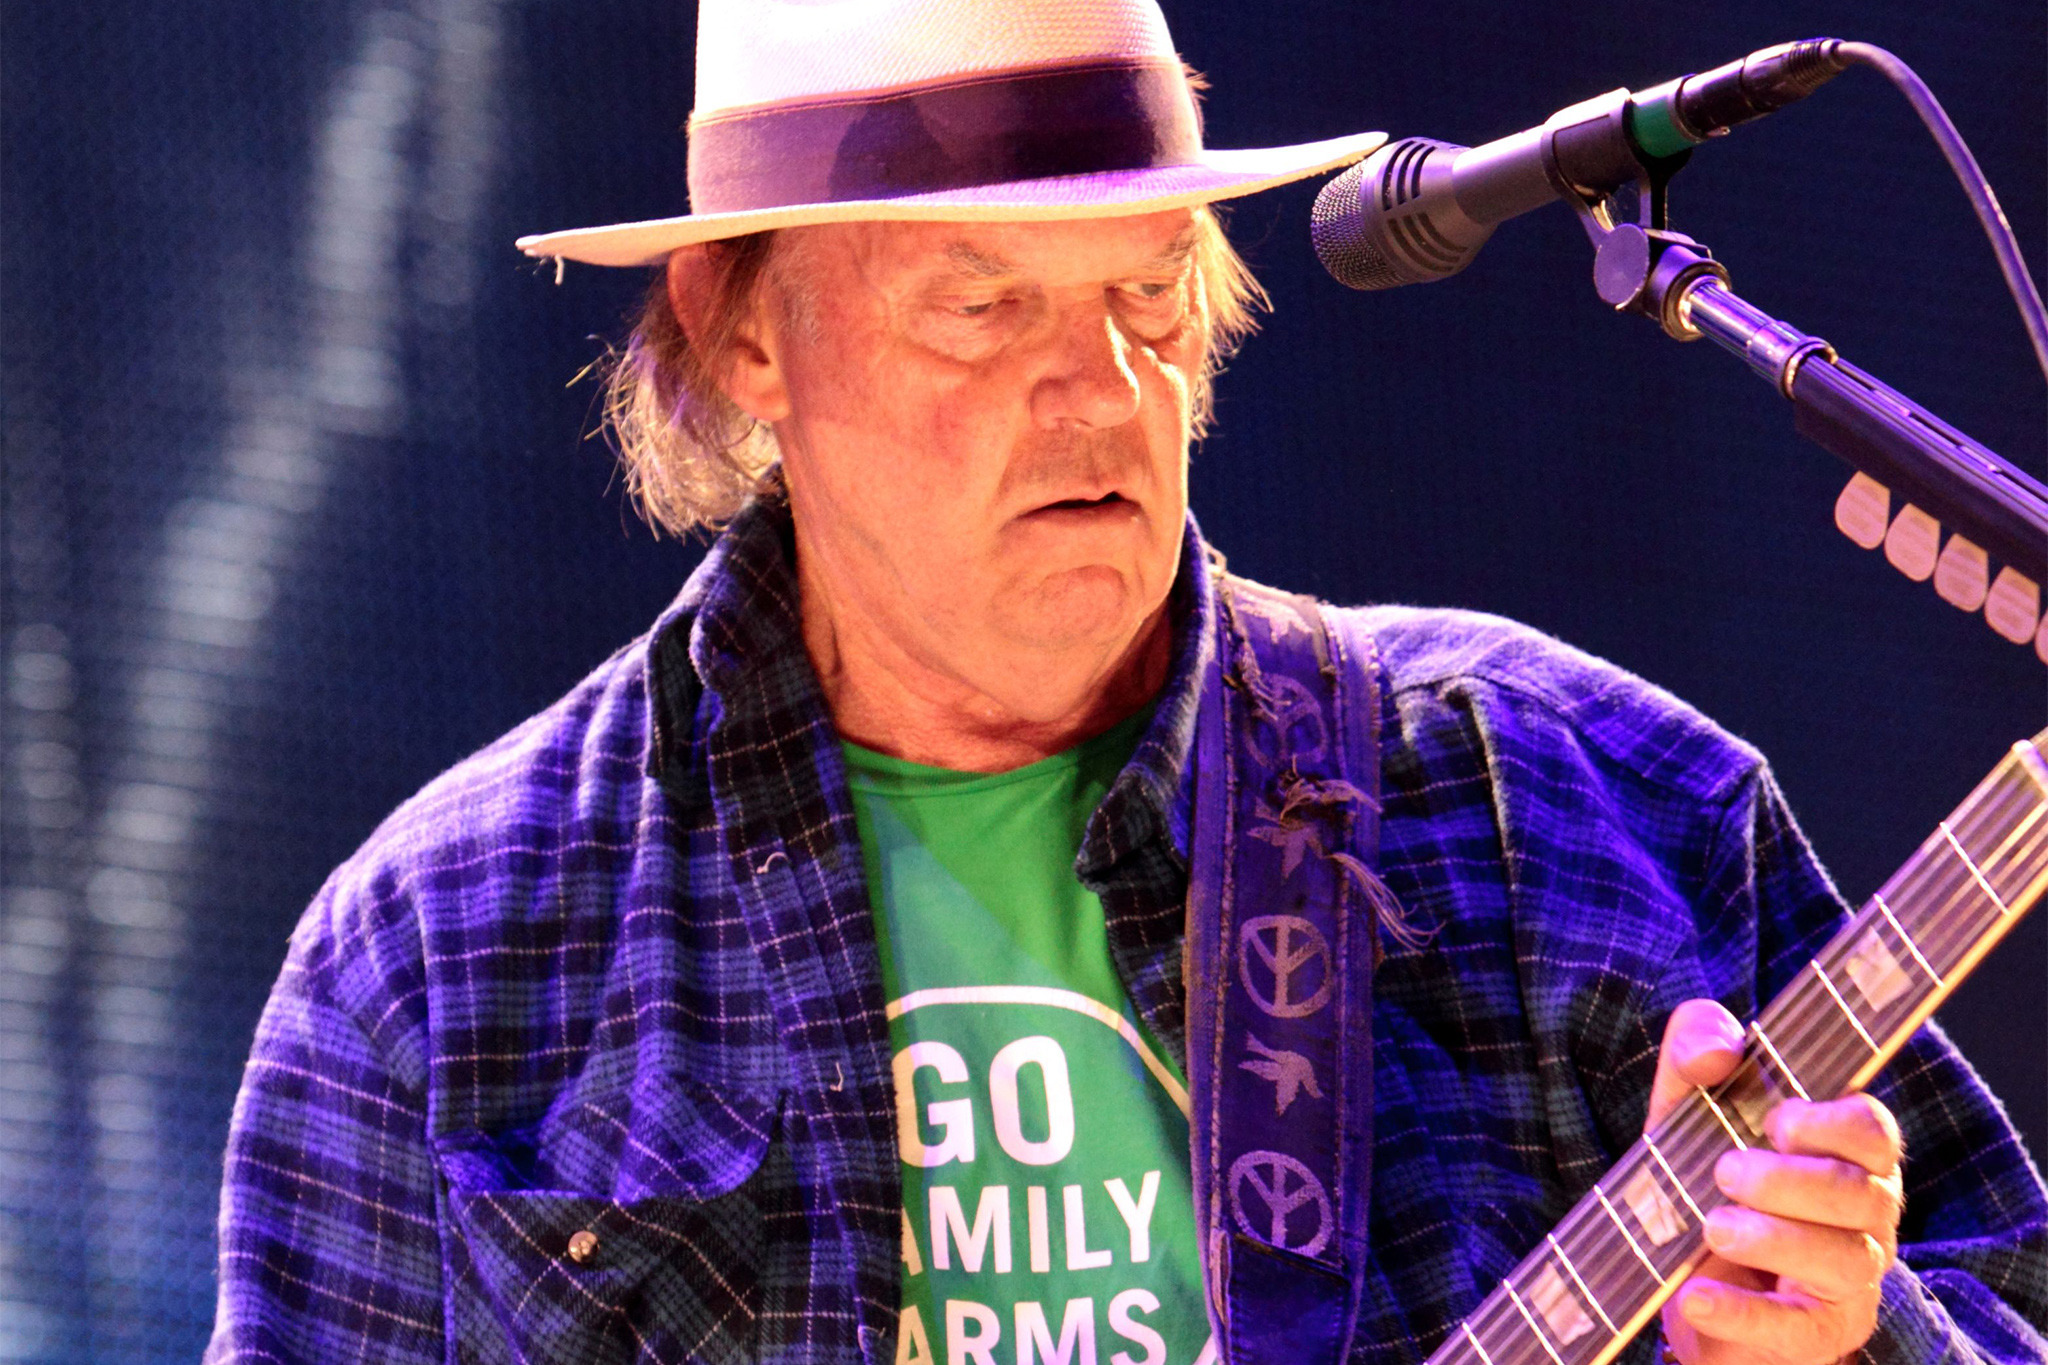 Wage heavy peace with rock legend Neil Young